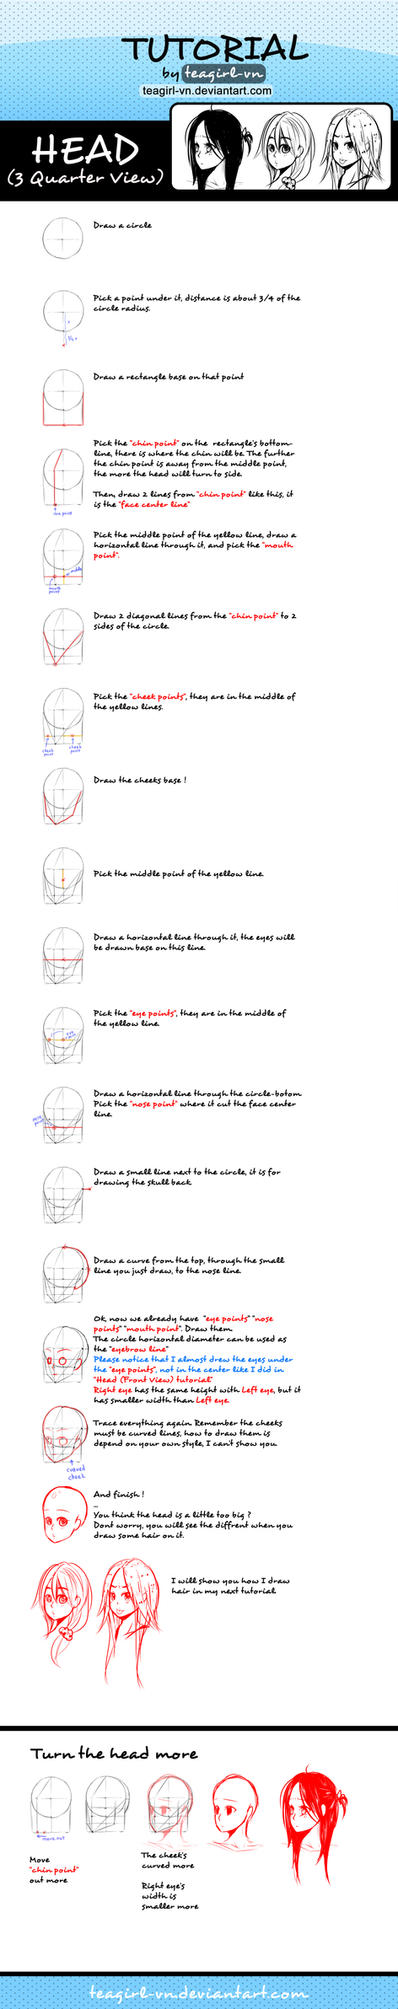 Tutorial How To Draw Head ( 3 Quarter View ) by teagirl-vn